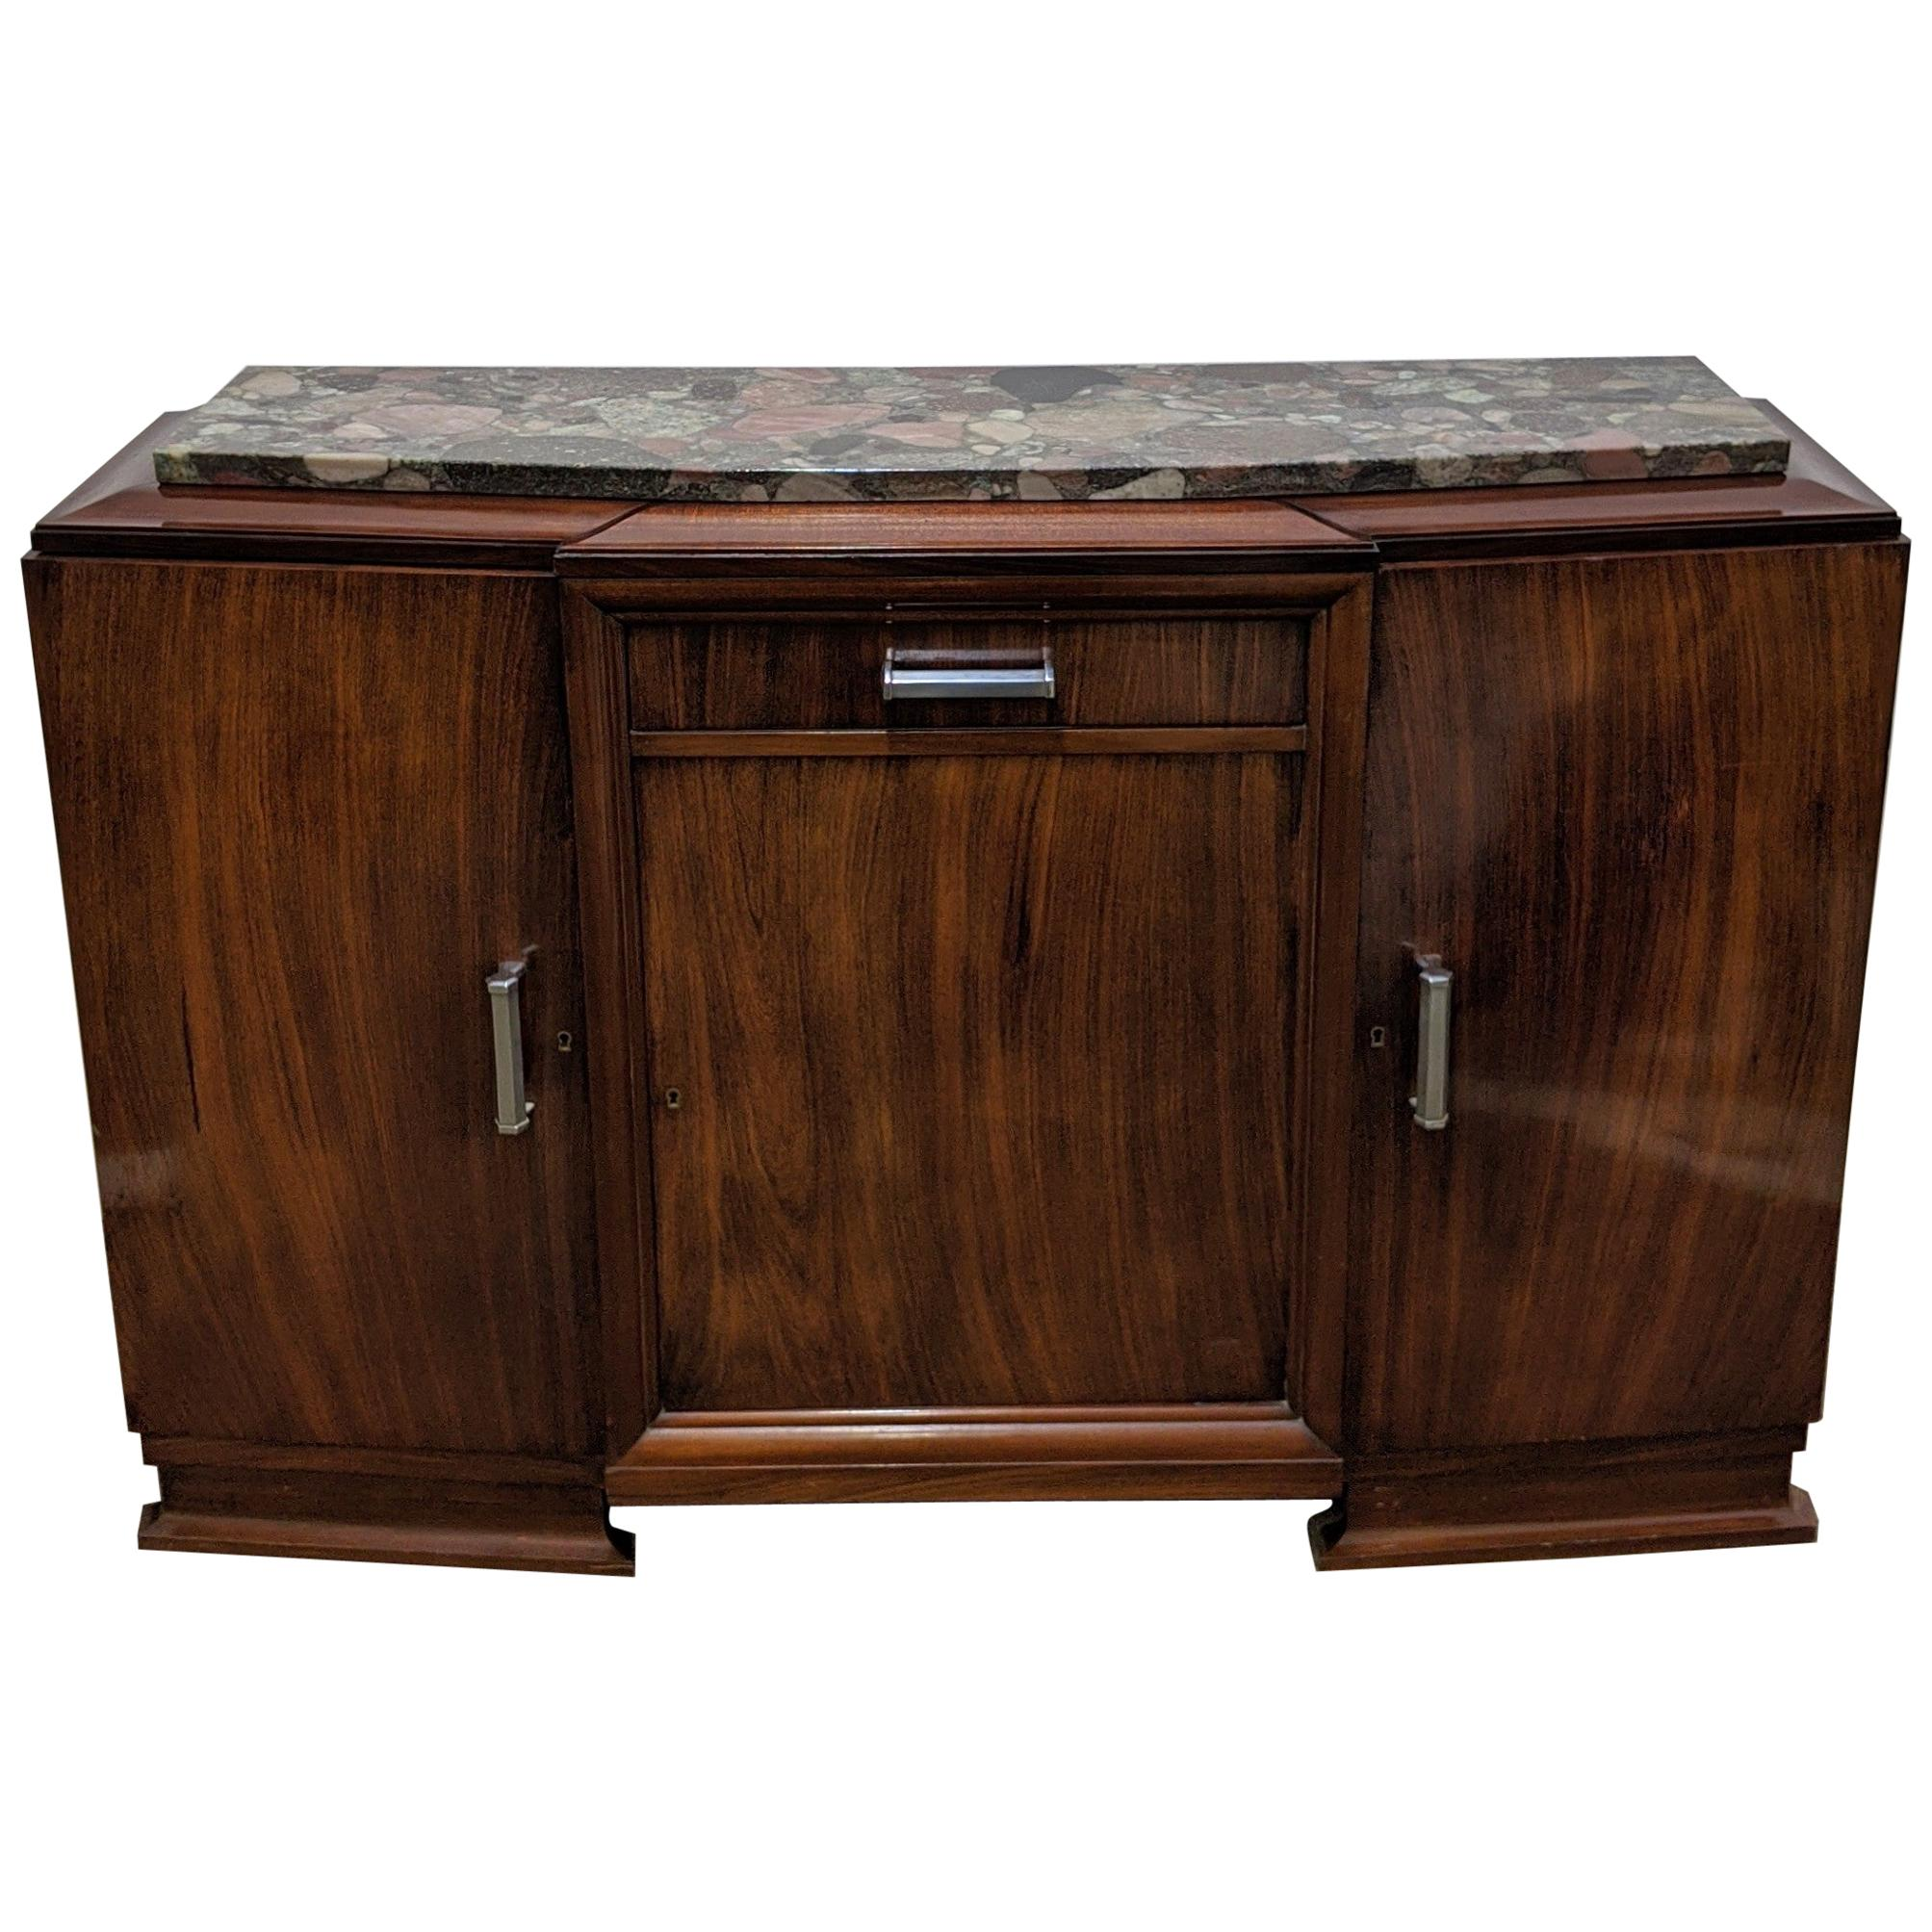 French Art Deco Sideboard, Buffet, Credenza